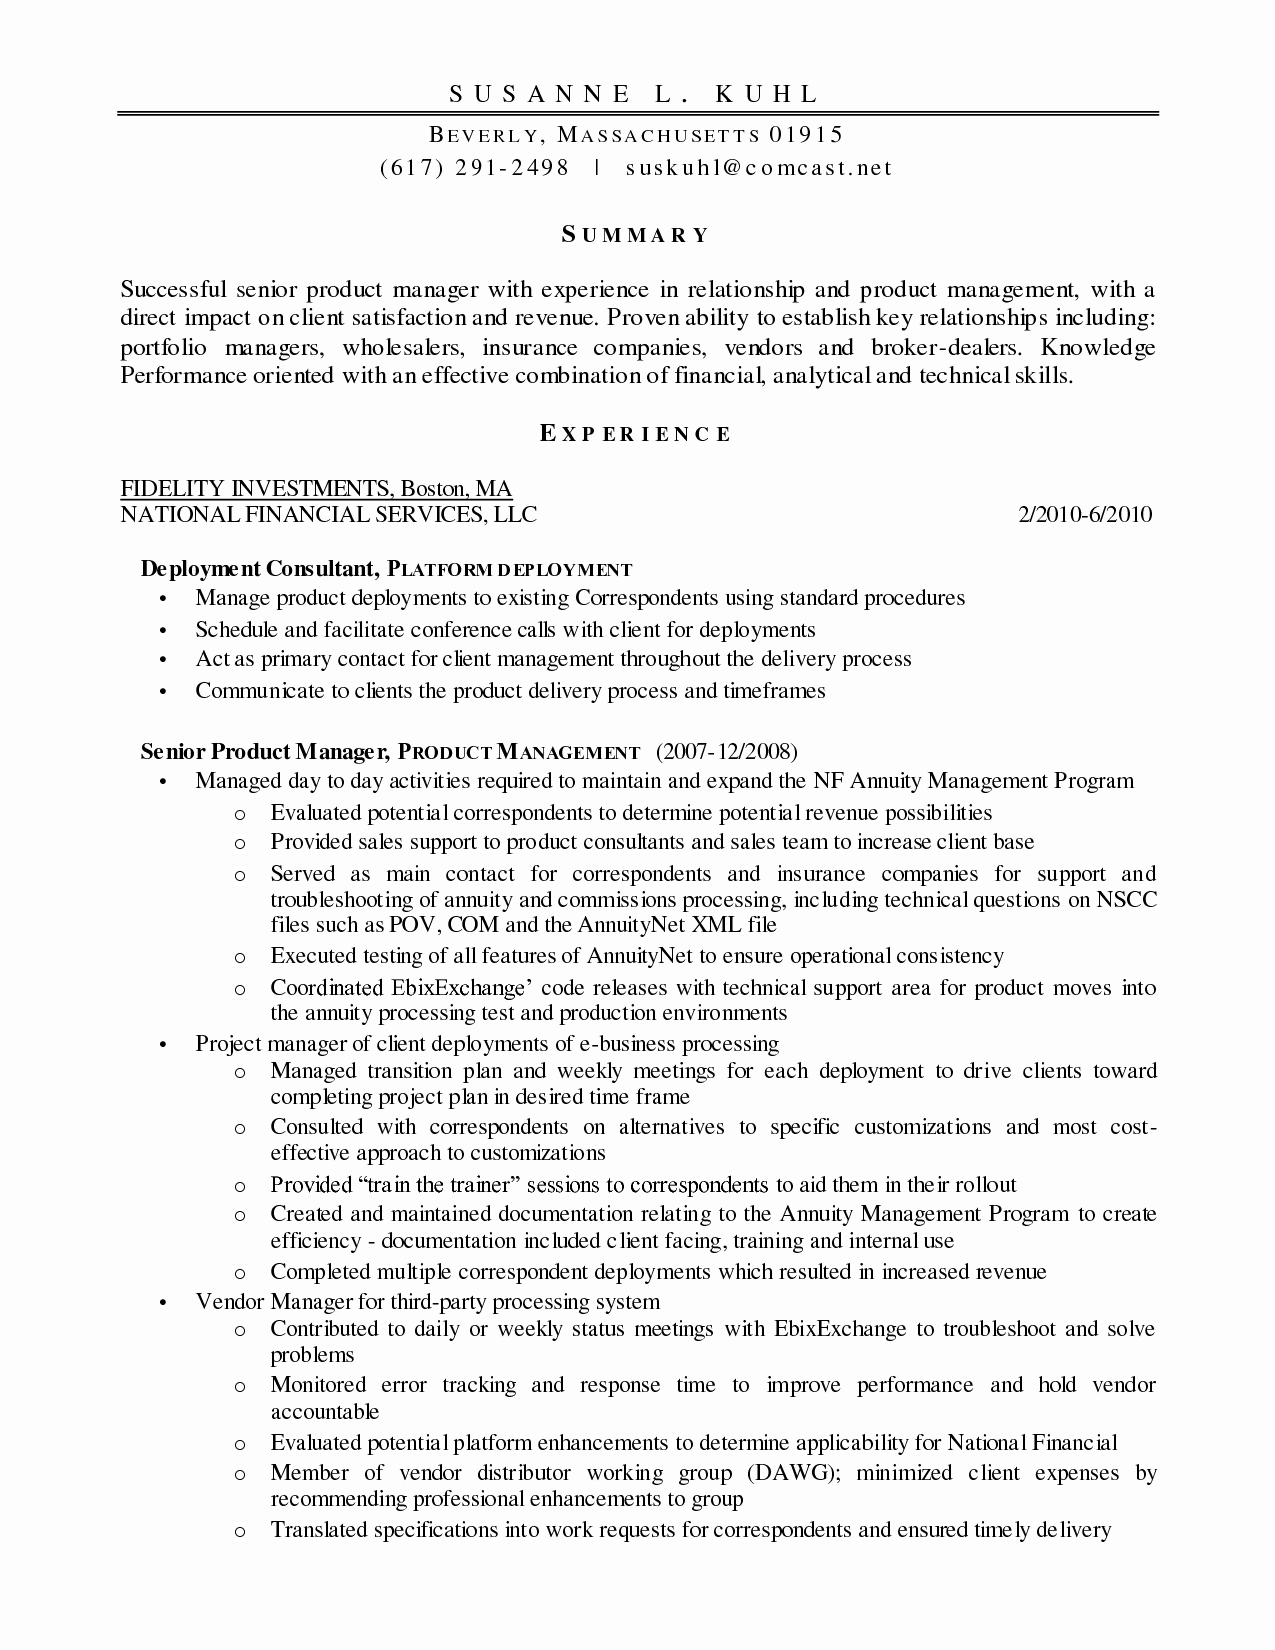 Product Management Resume